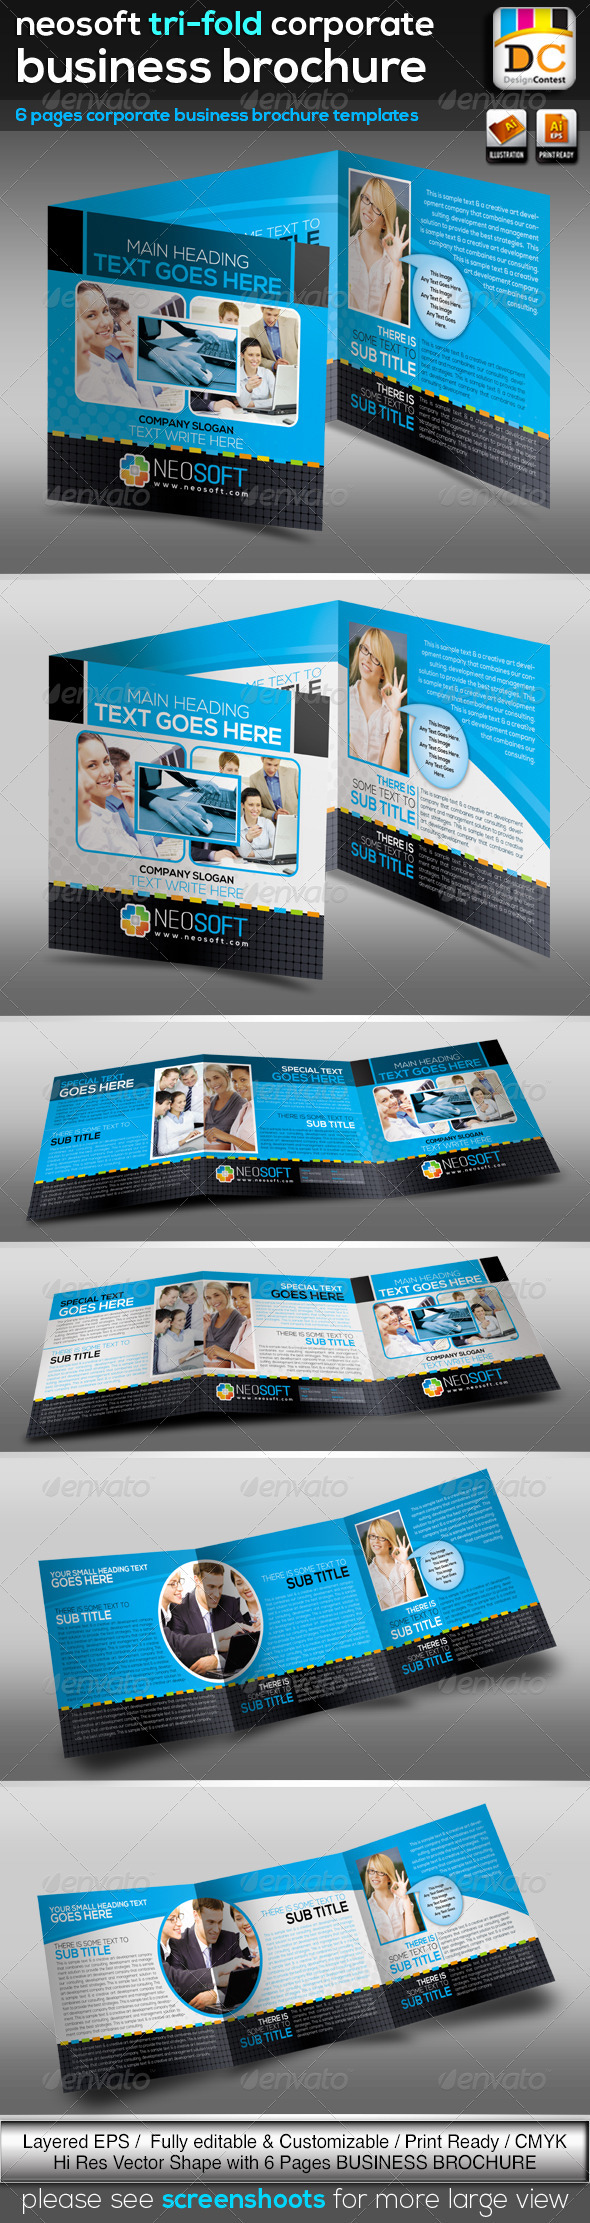 GraphicRiver NeoSoft Tri-fold Corporate Business Brochure V-02 3634939